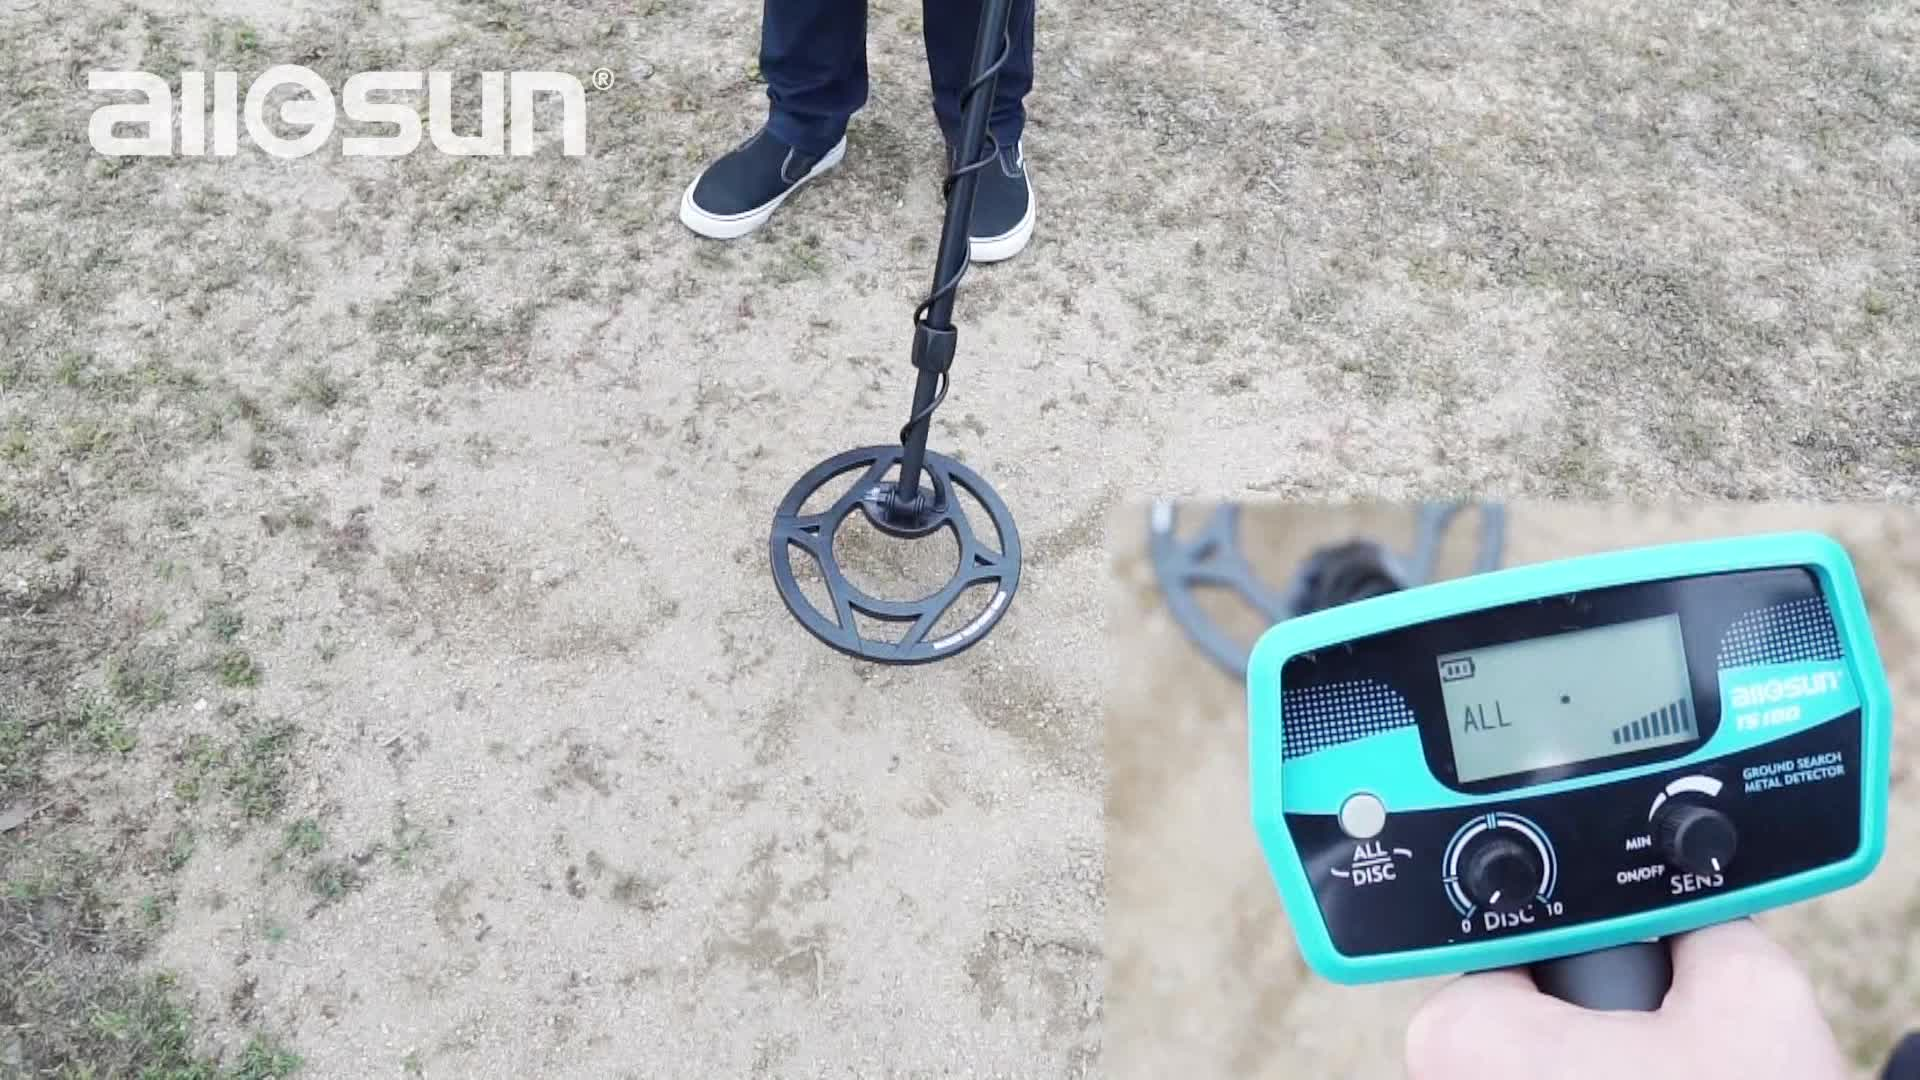 All-sun TS180 ground search metal detector with adjustable sensitivity